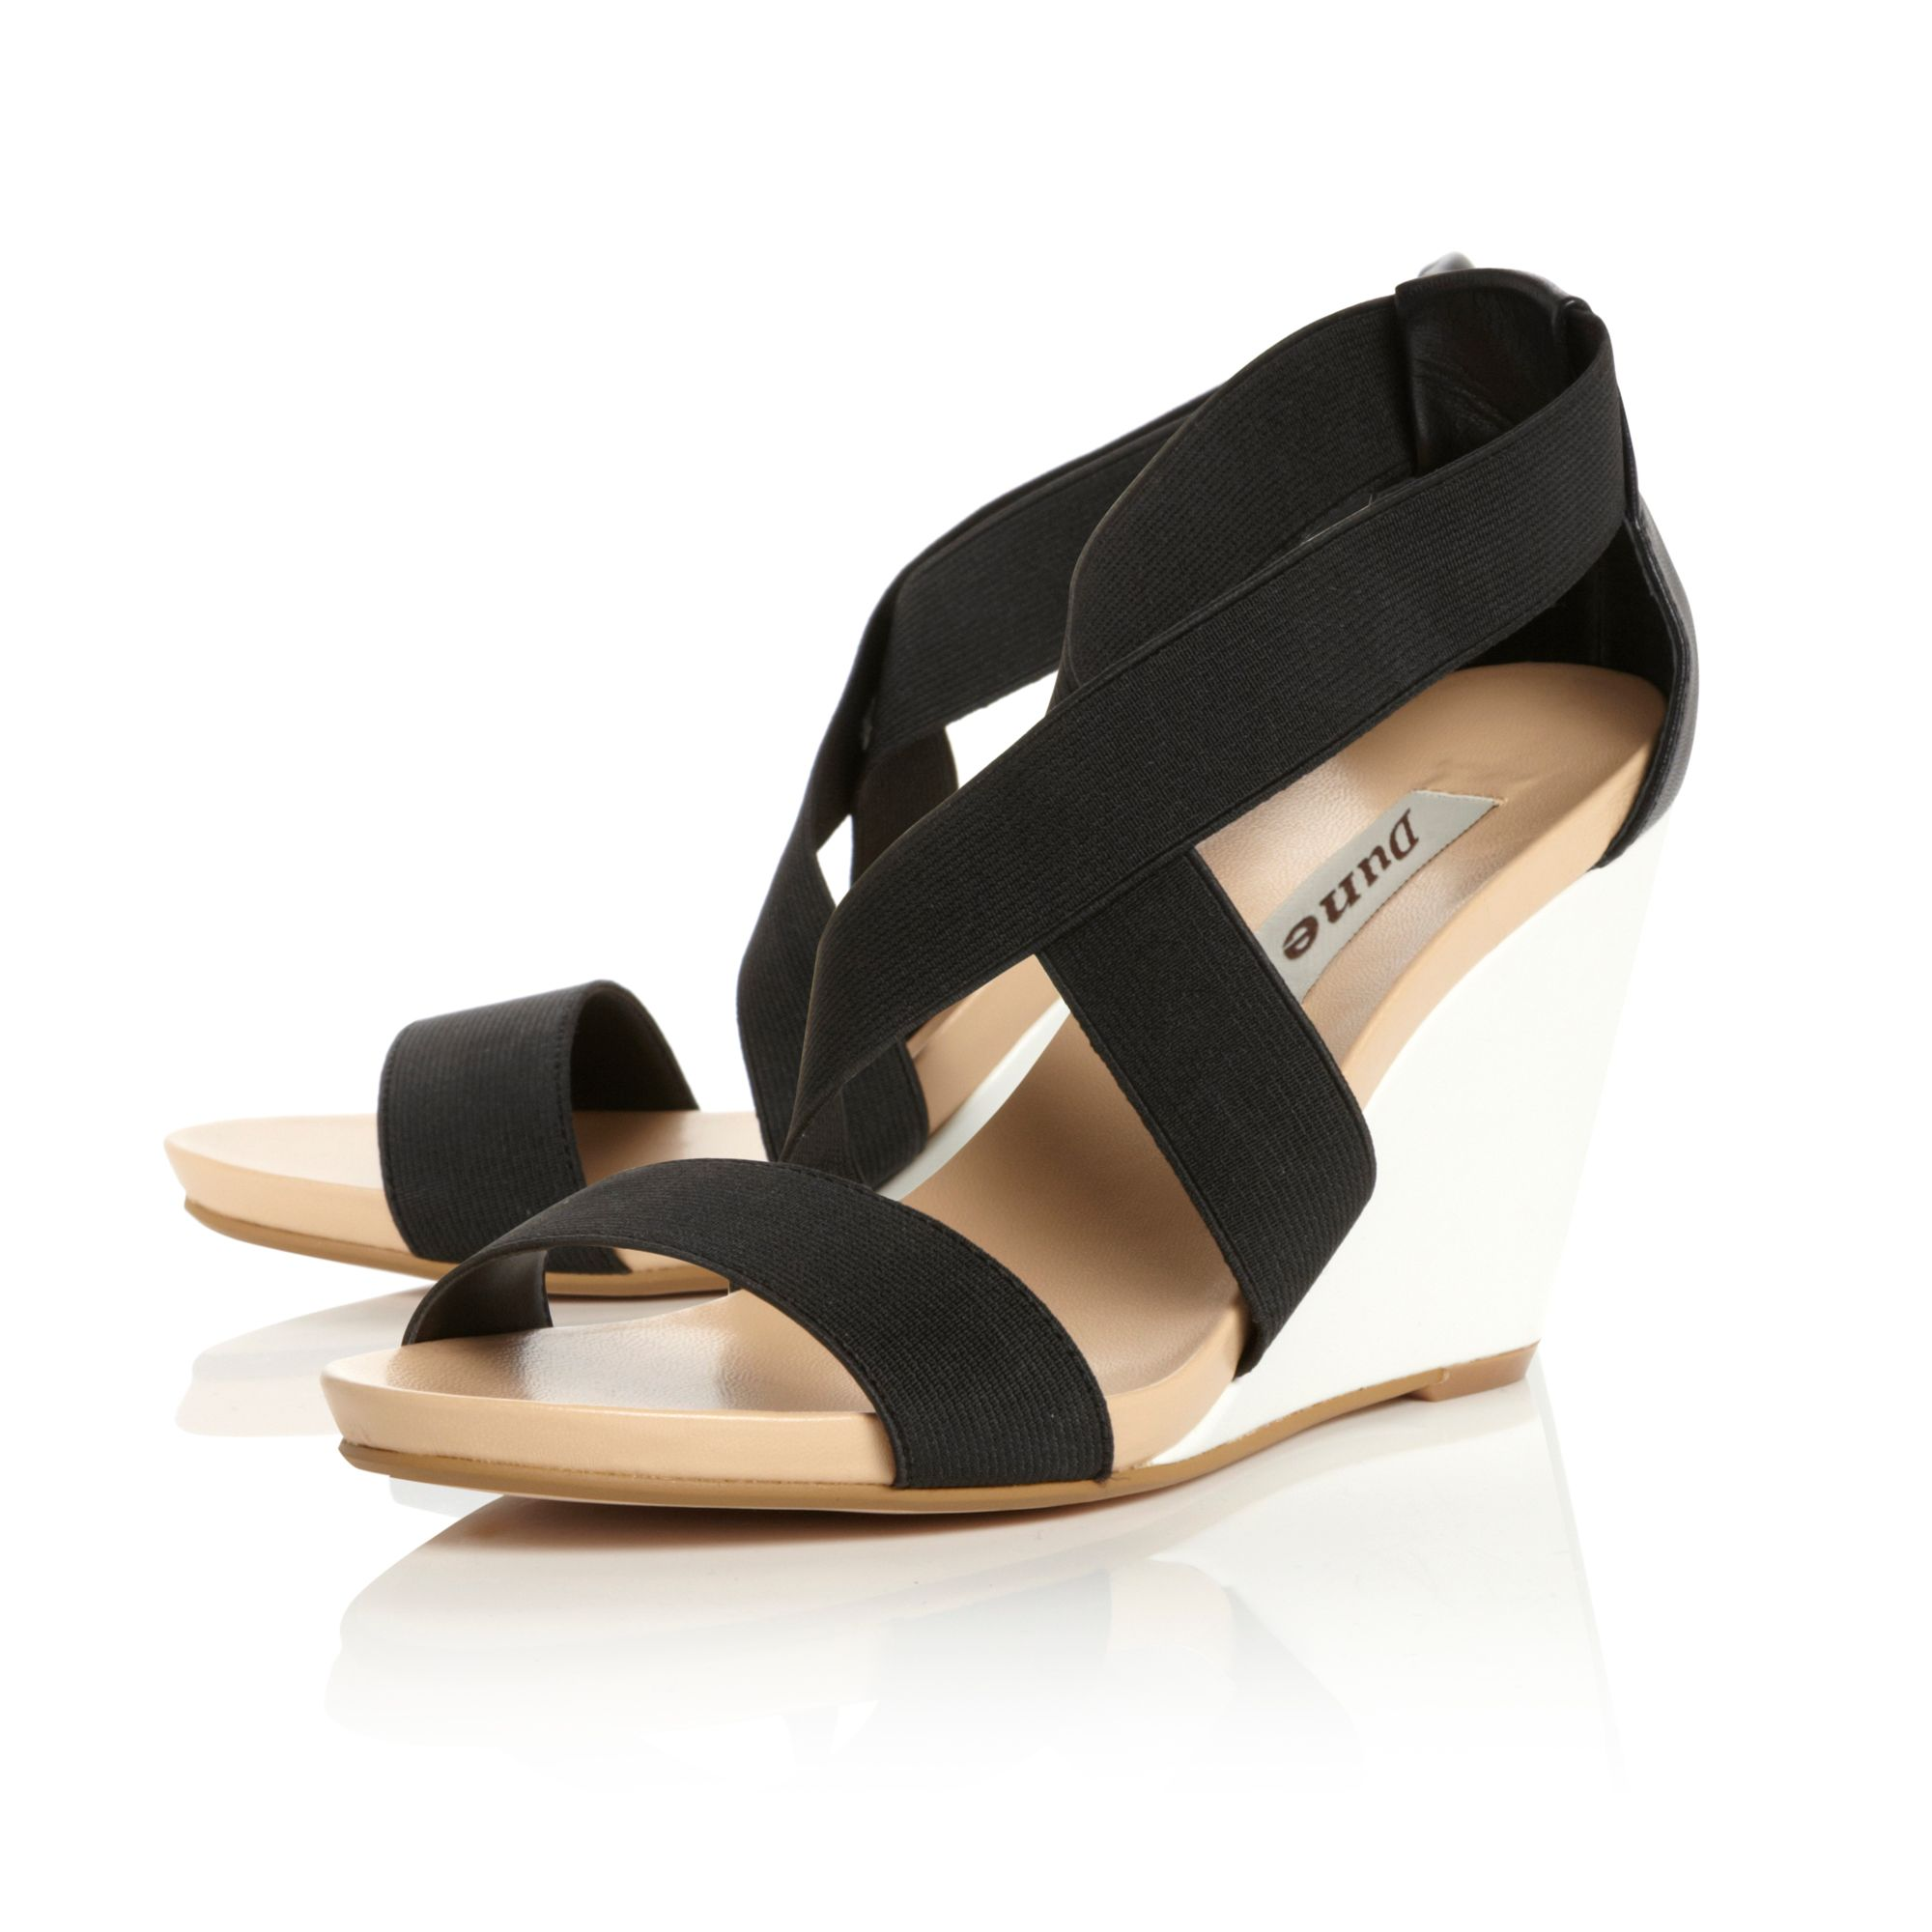 Glide Elasticated Footbed Wedge Sandals